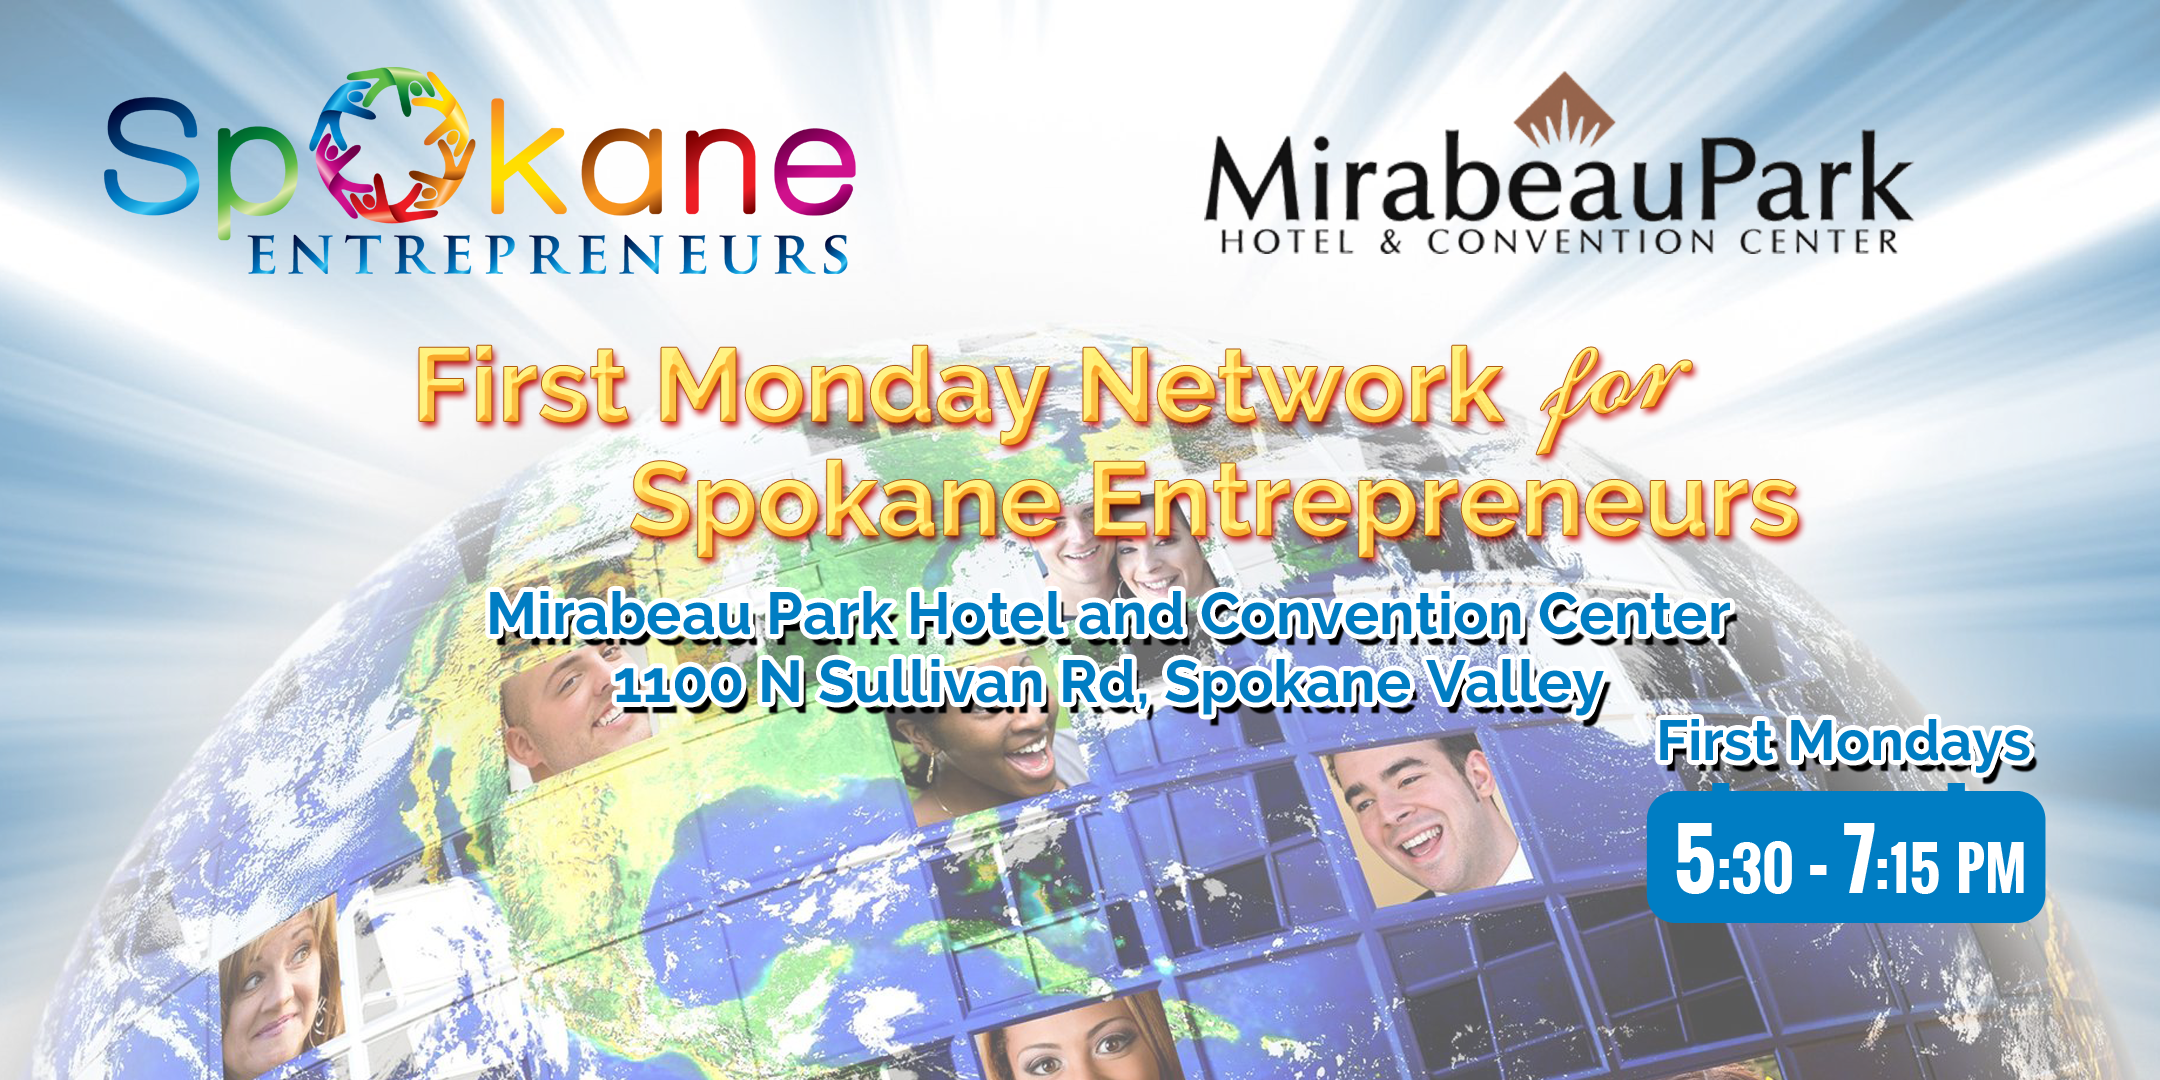 First Monday Network for Spokane Entrepreneur